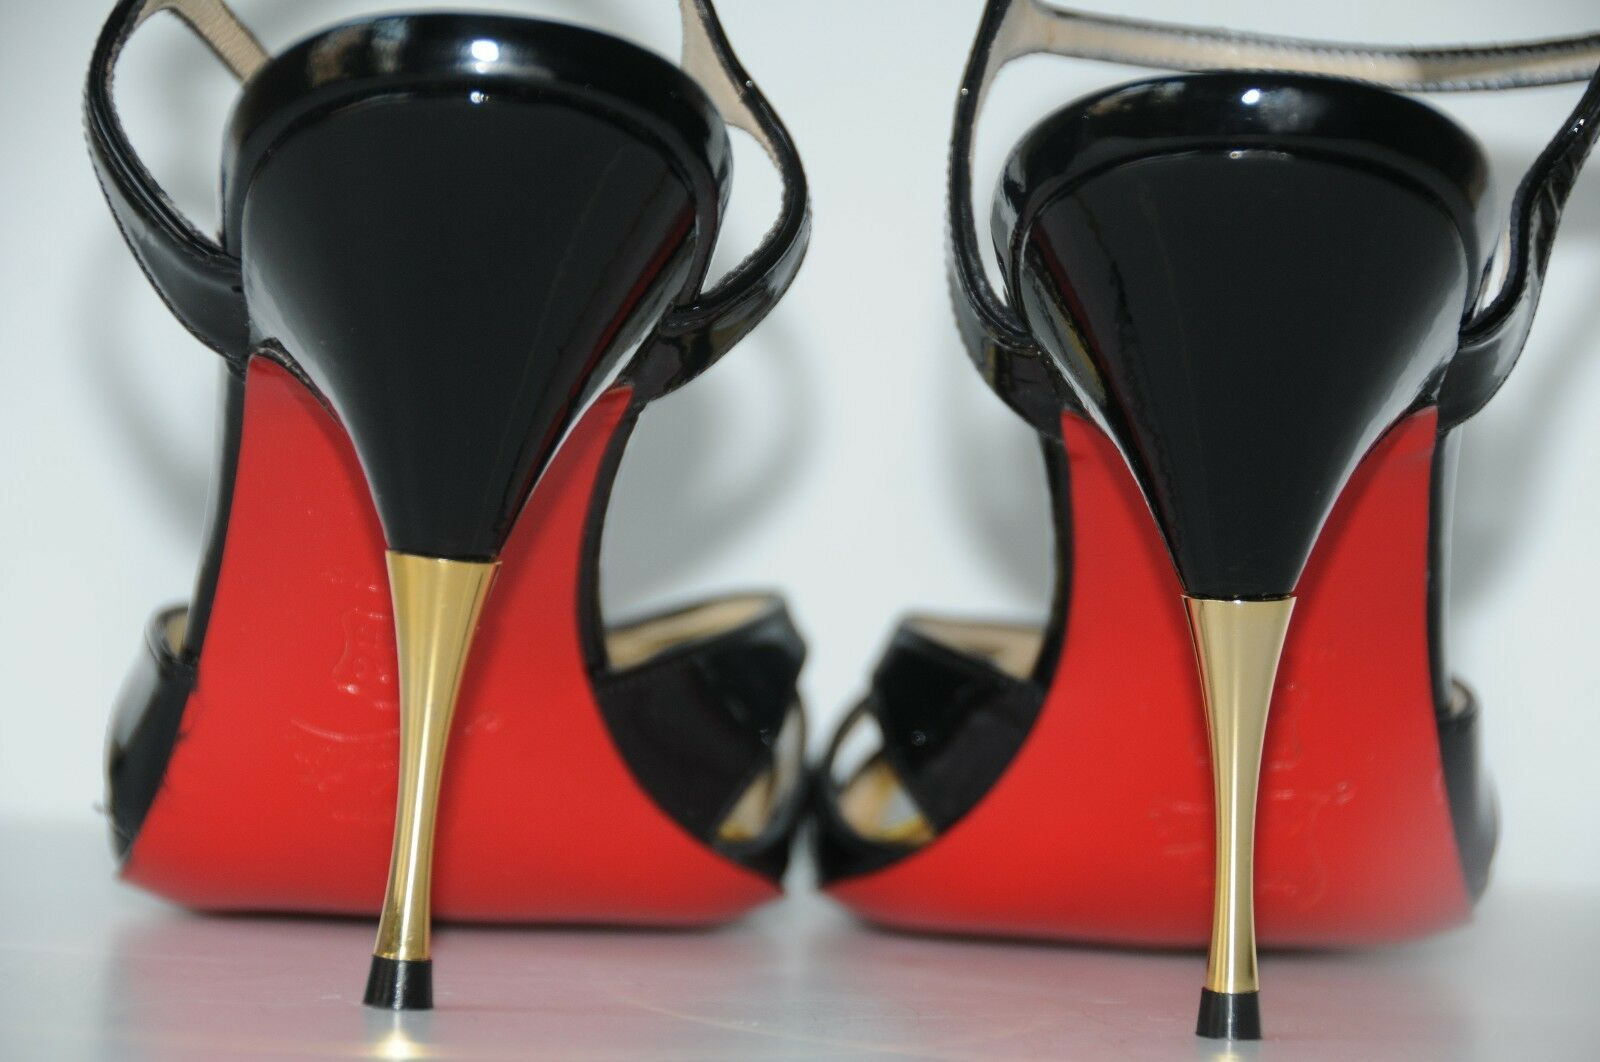 New CHRISTIAN CHRISTIAN CHRISTIAN LOUBOUTIN NOEUDETTE Black Patent gold Sandals Peep Toe SHOES 38 39 6edb41